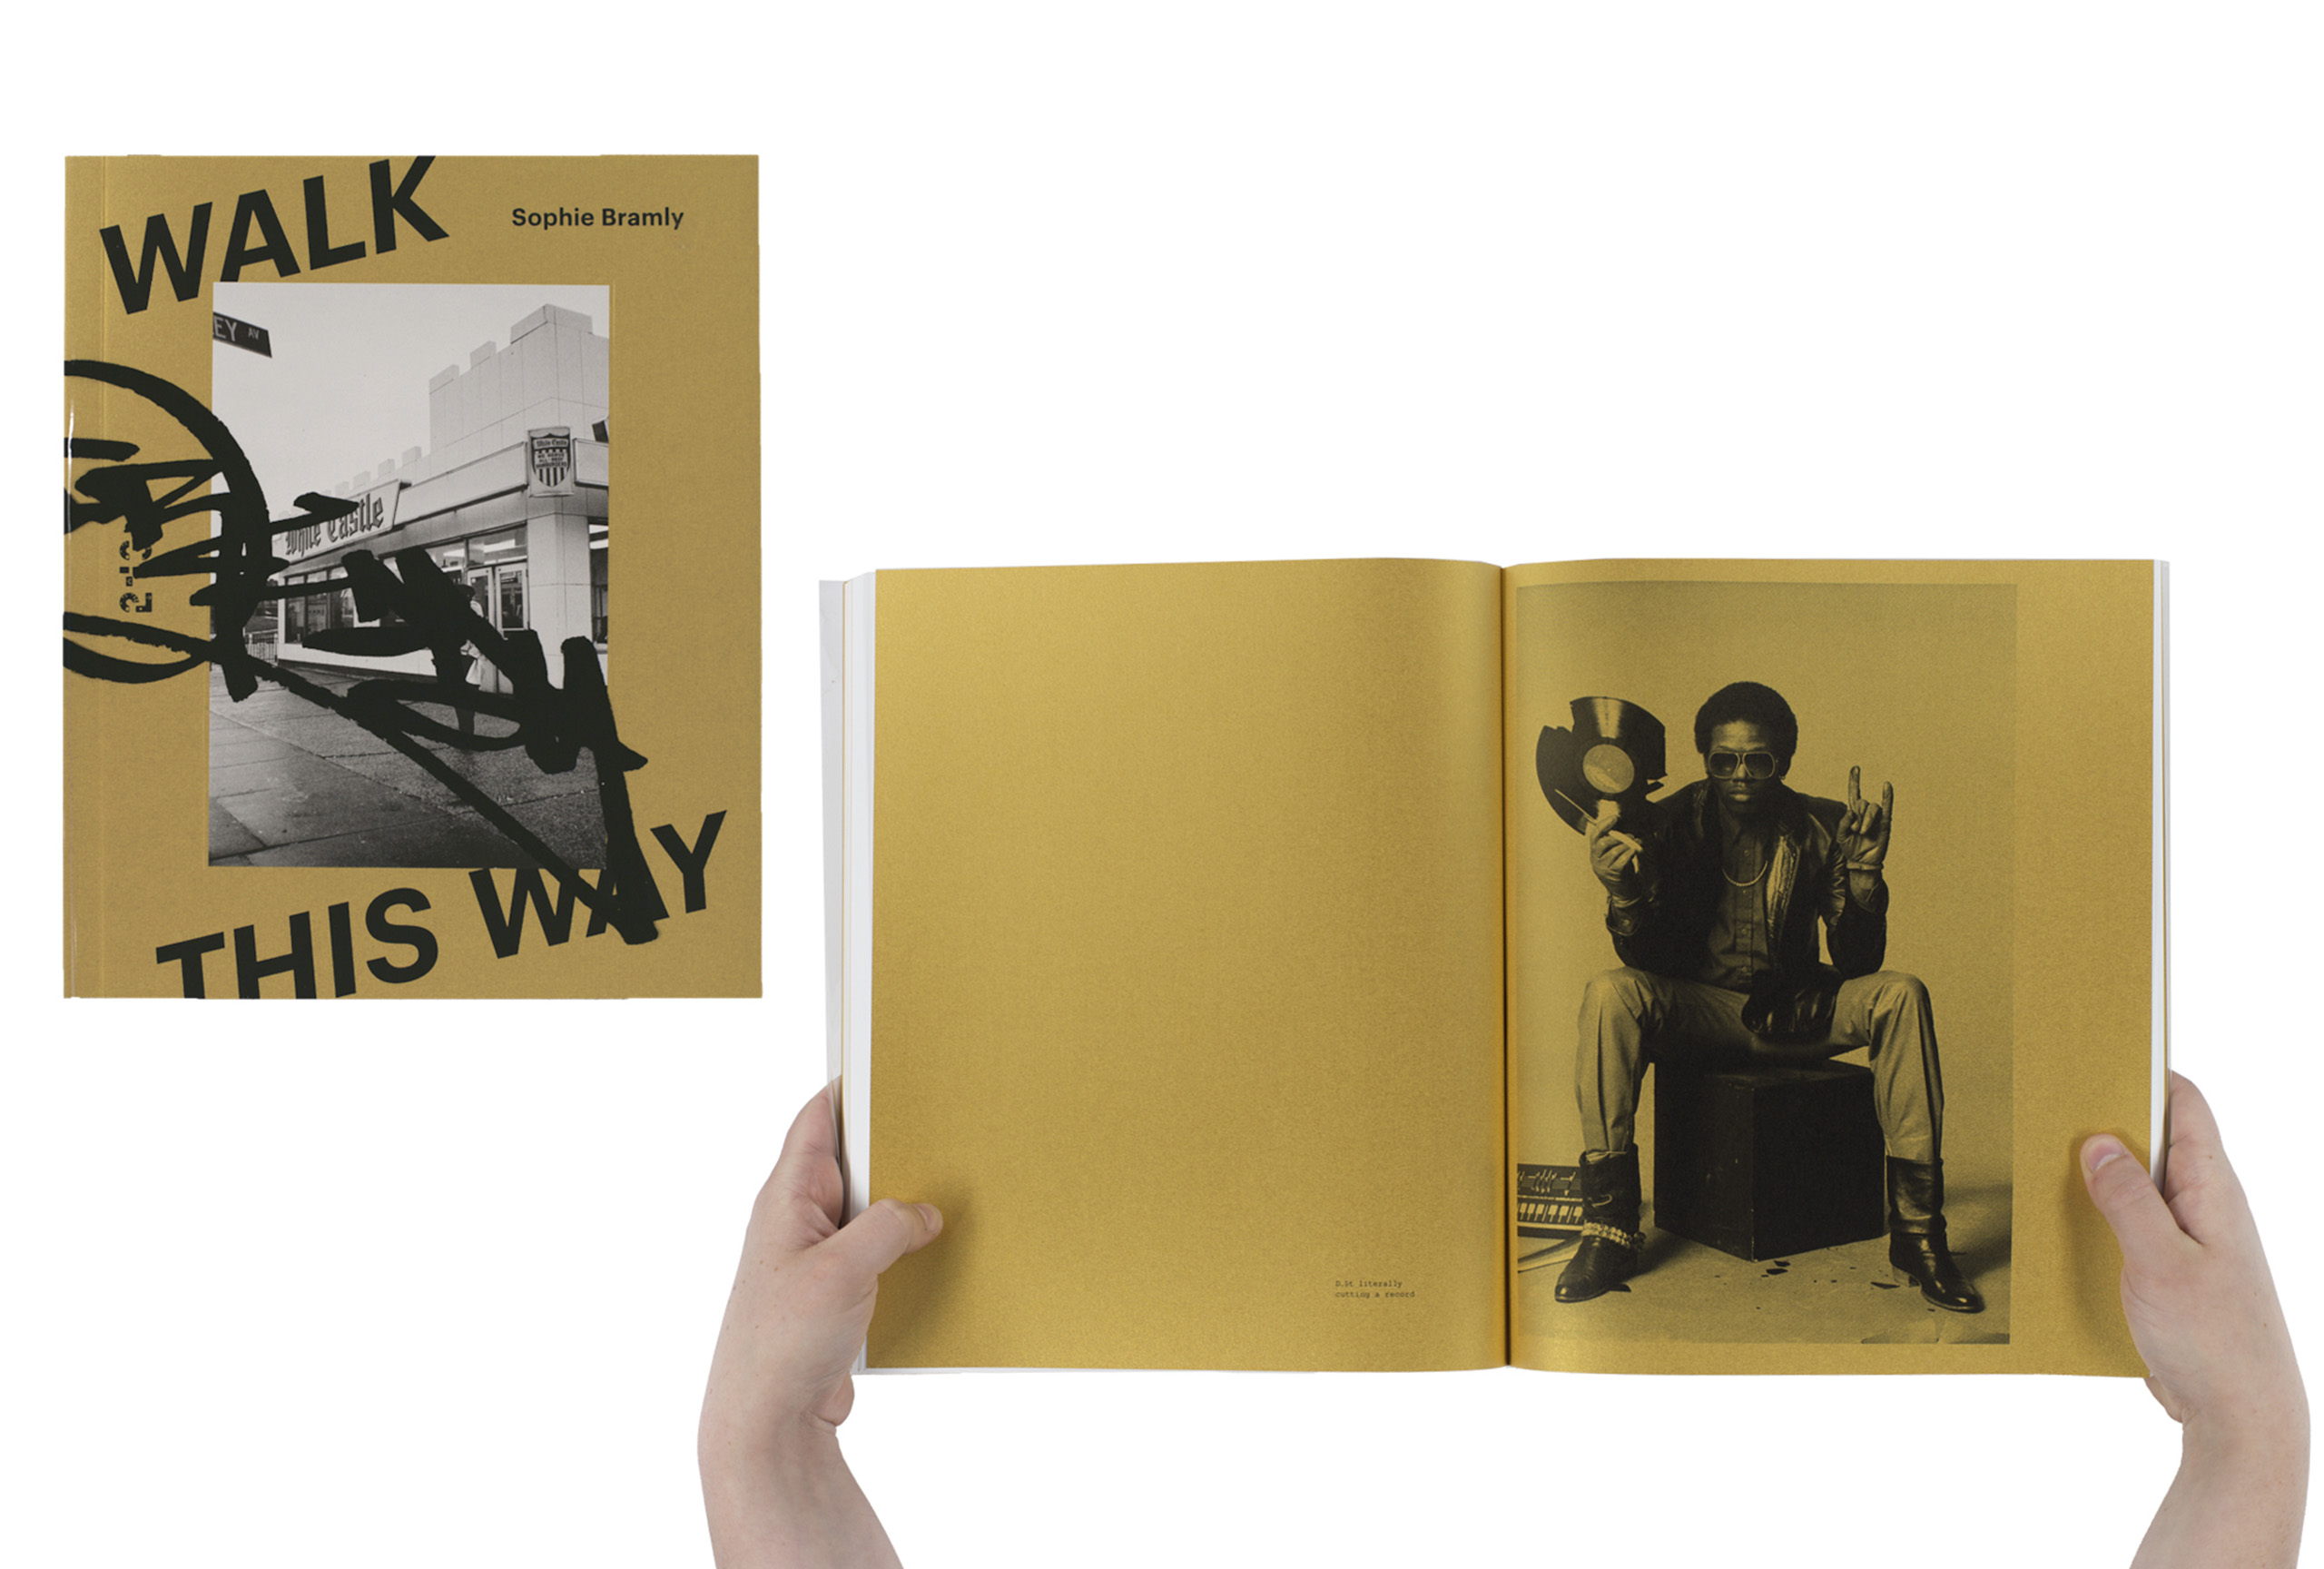 Walk This Way by Sophie Bramly, published by Galerie 213. Short-listed title for First PhotoBook.